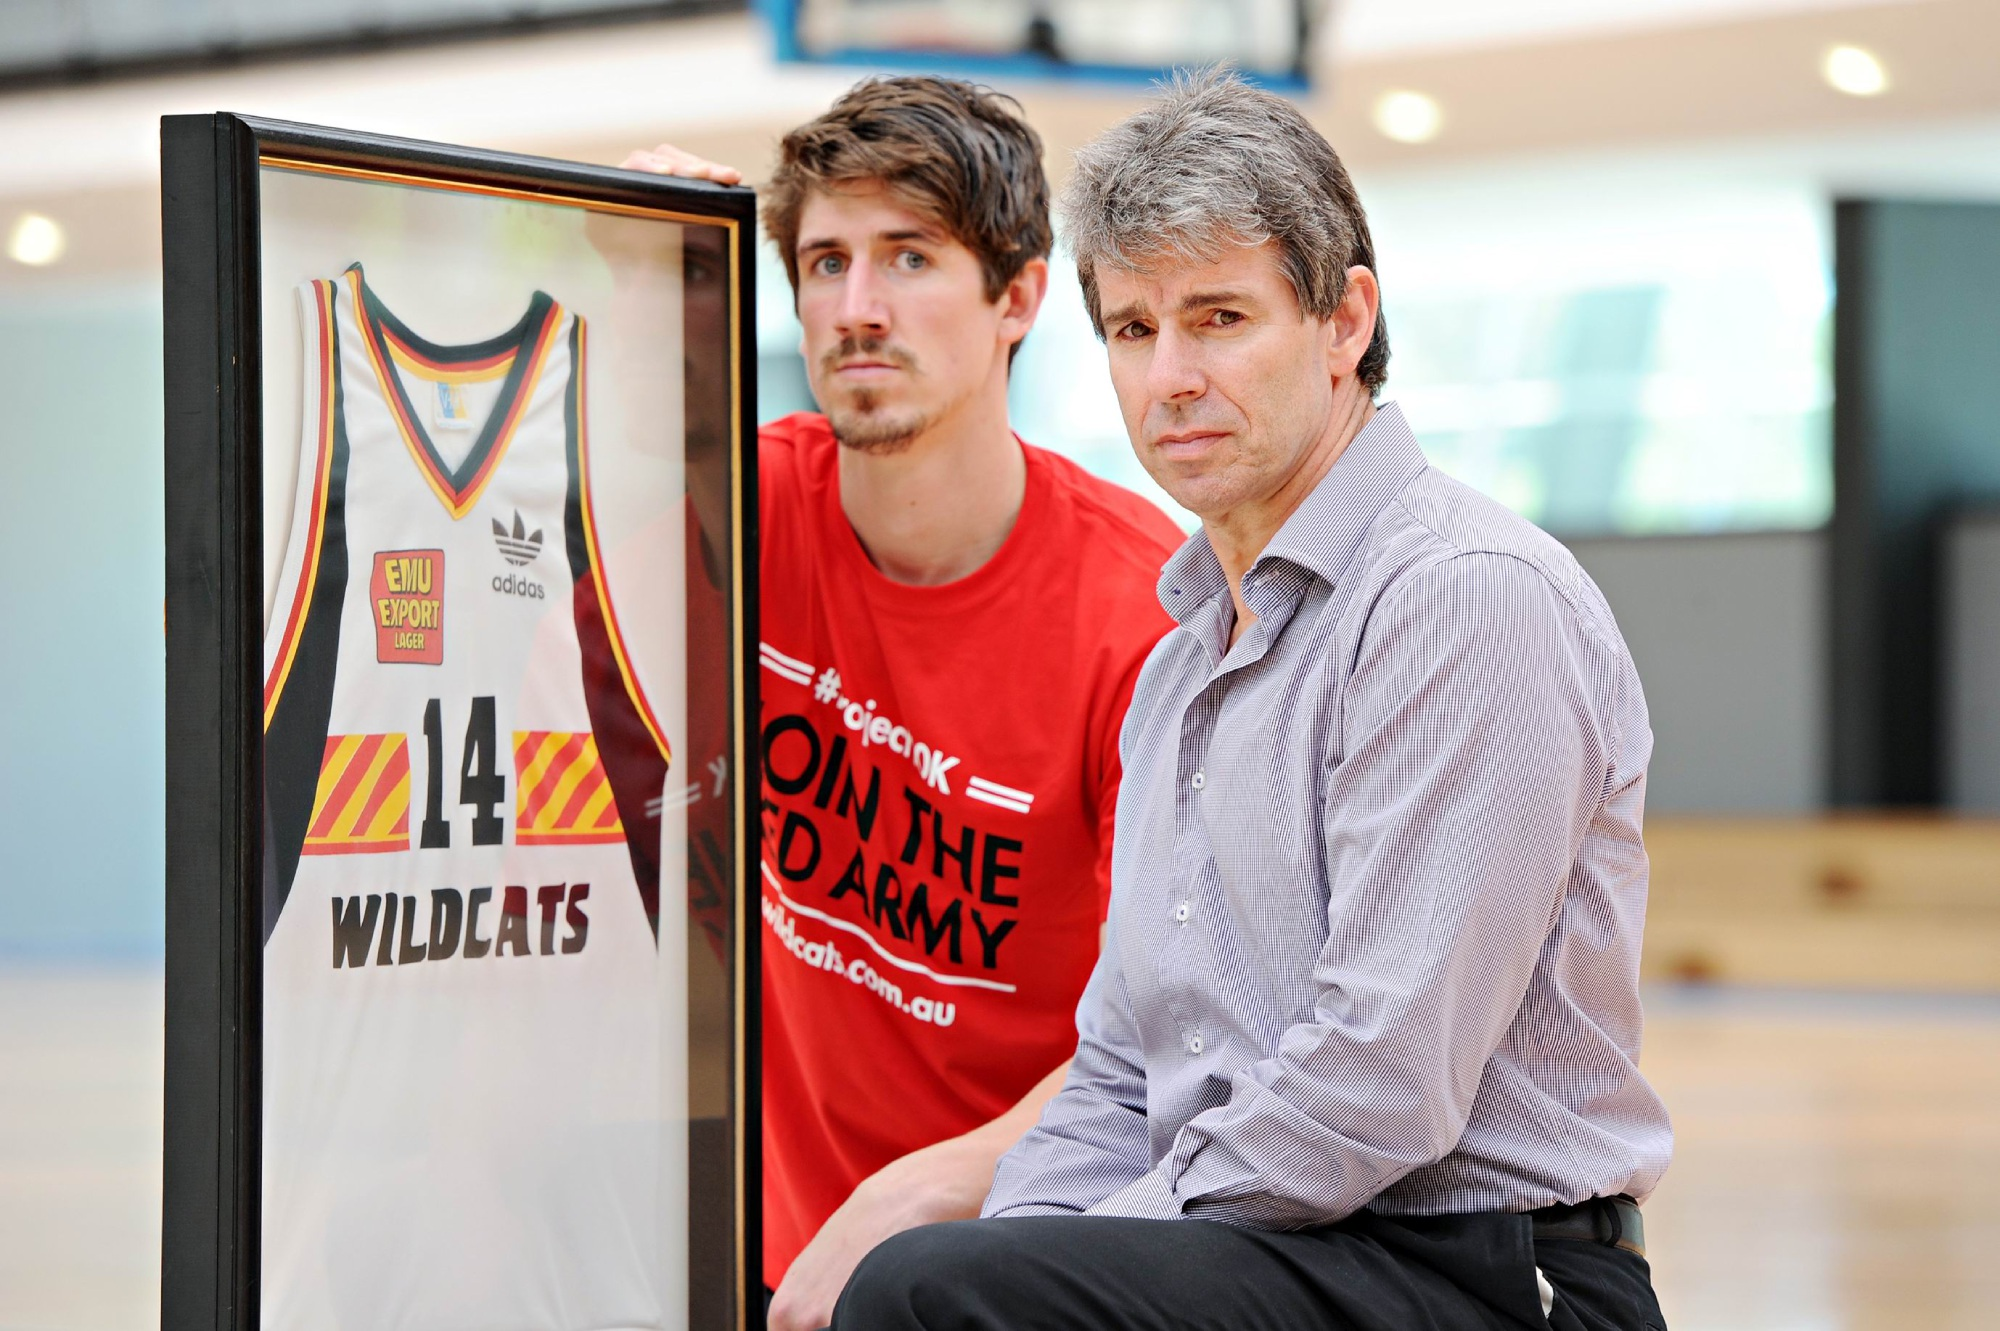 Former Perth Wildcats captain Mike Ellis and current player Greg Hire with Scott Fenton's retired jersey. Picture: Marcus Whisson